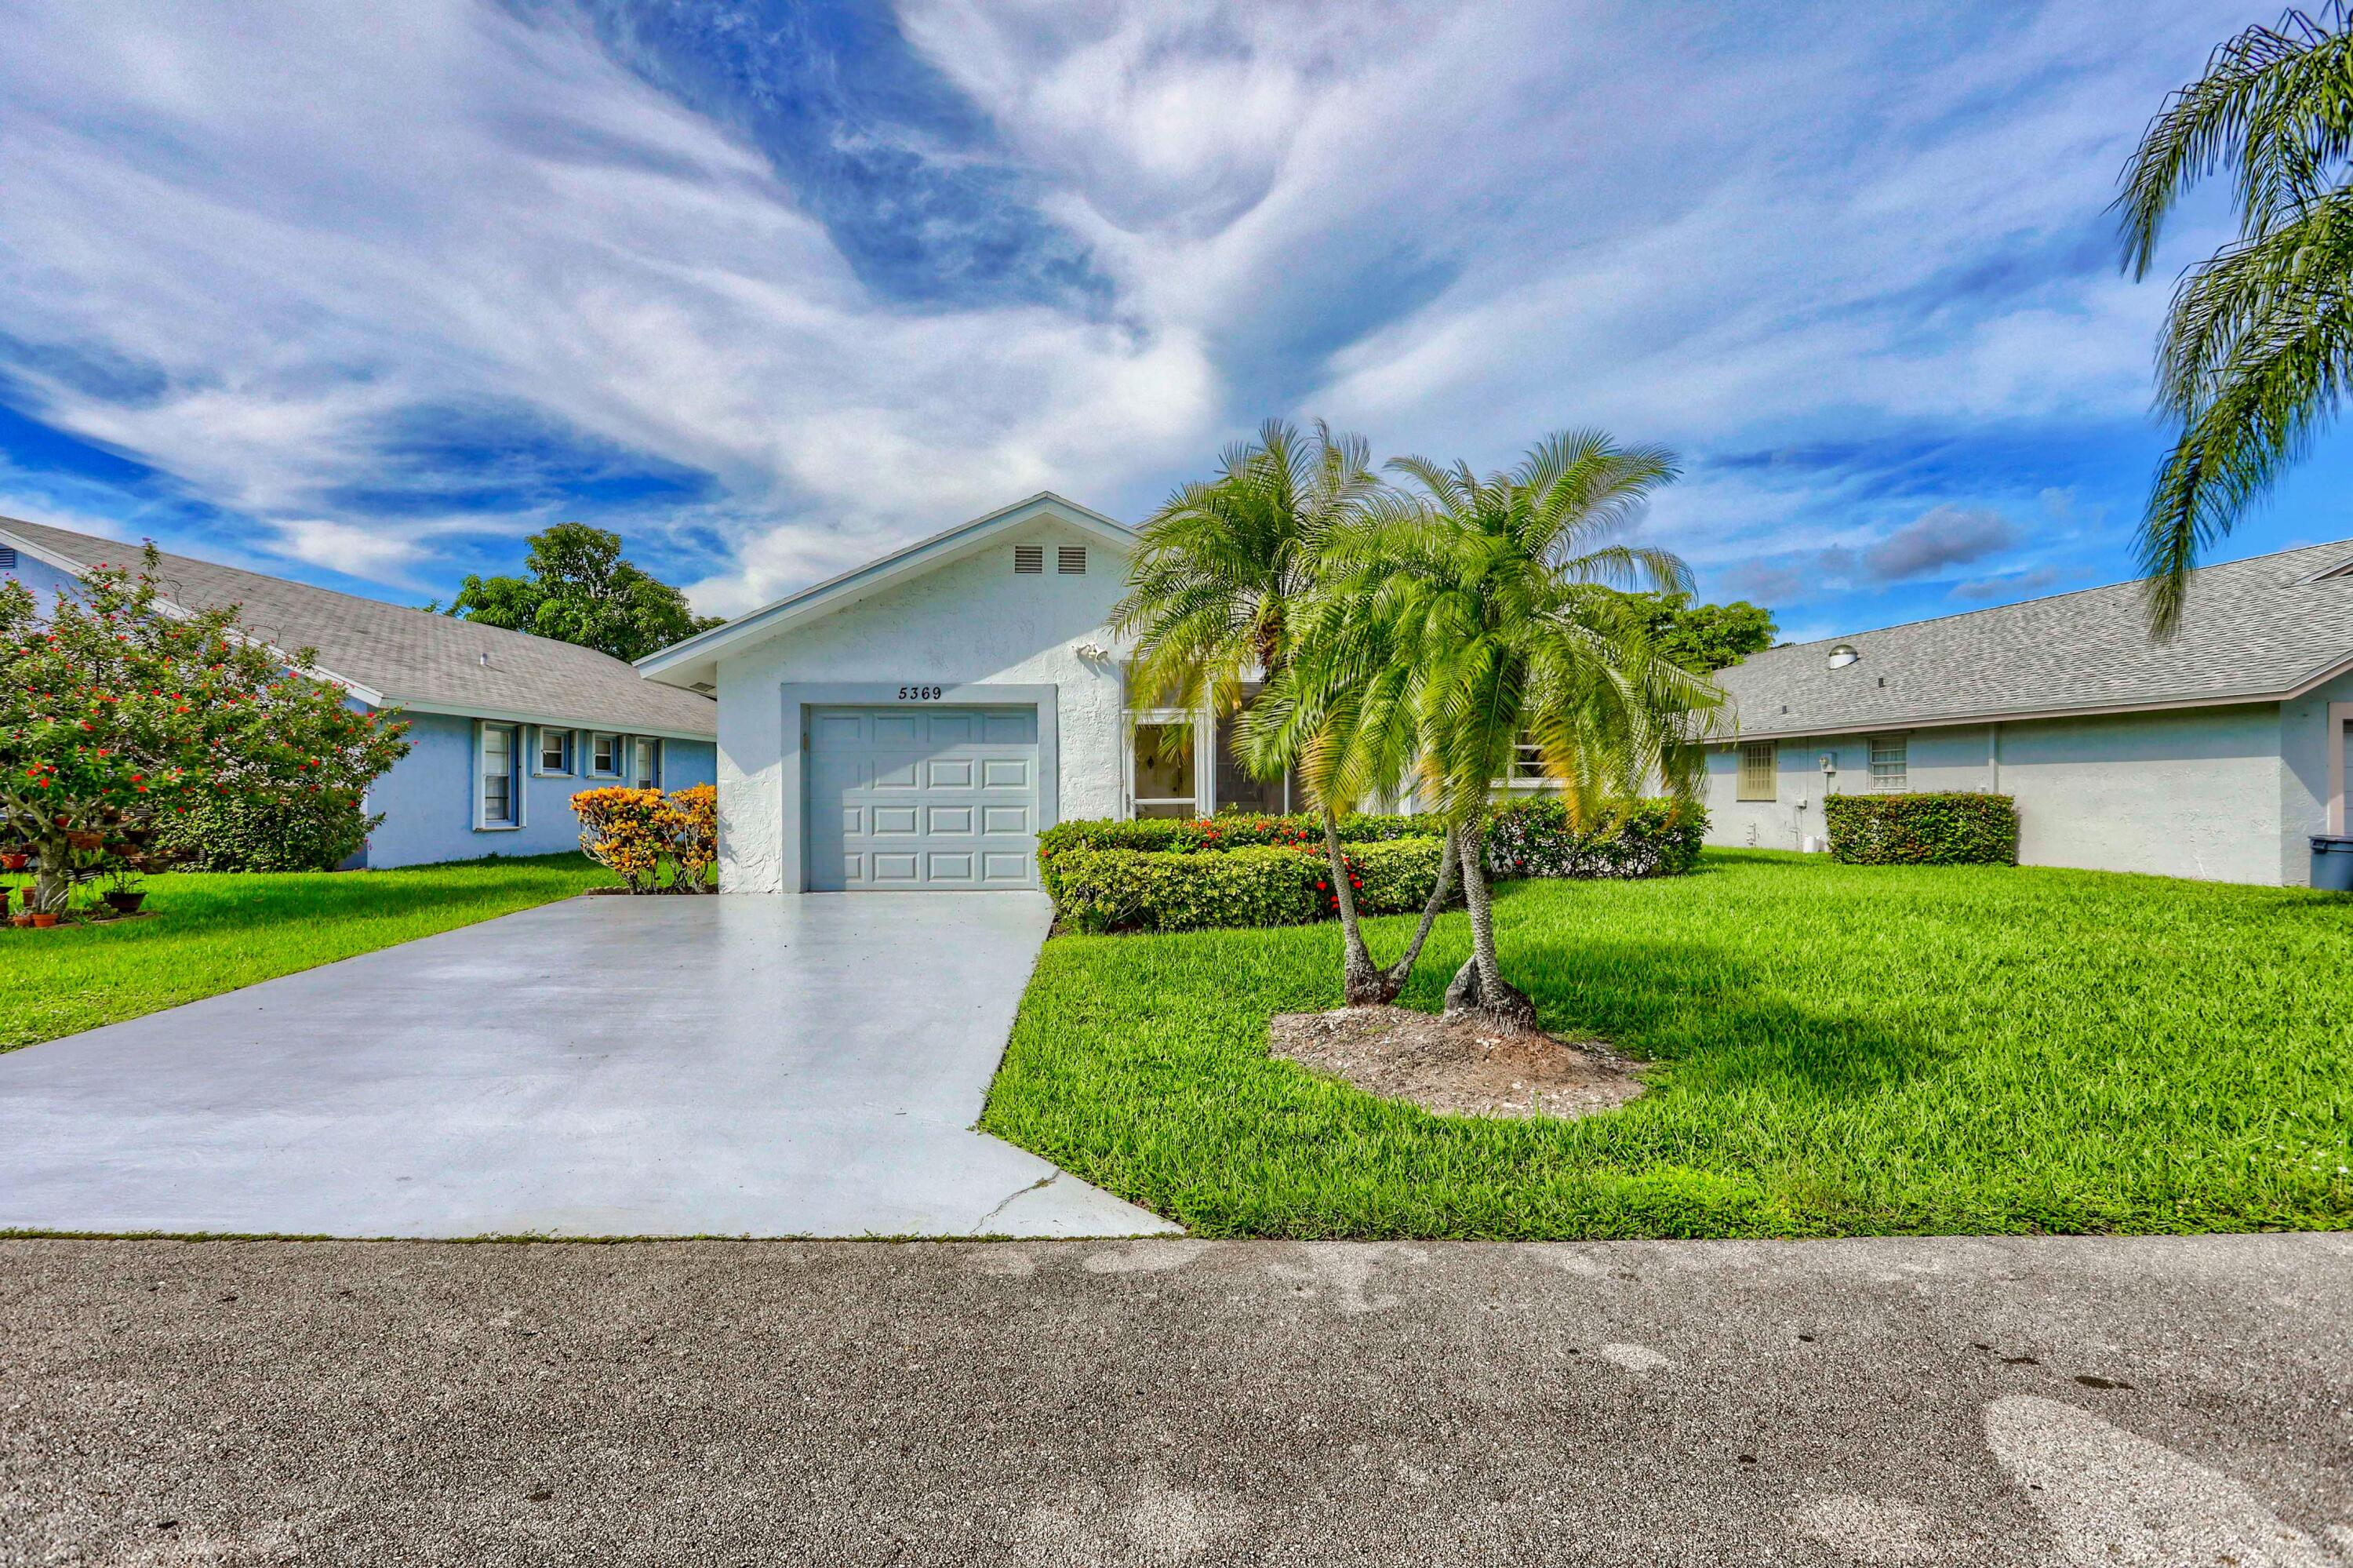 5369  Crystal Anne Drive  For Sale 10750196, FL